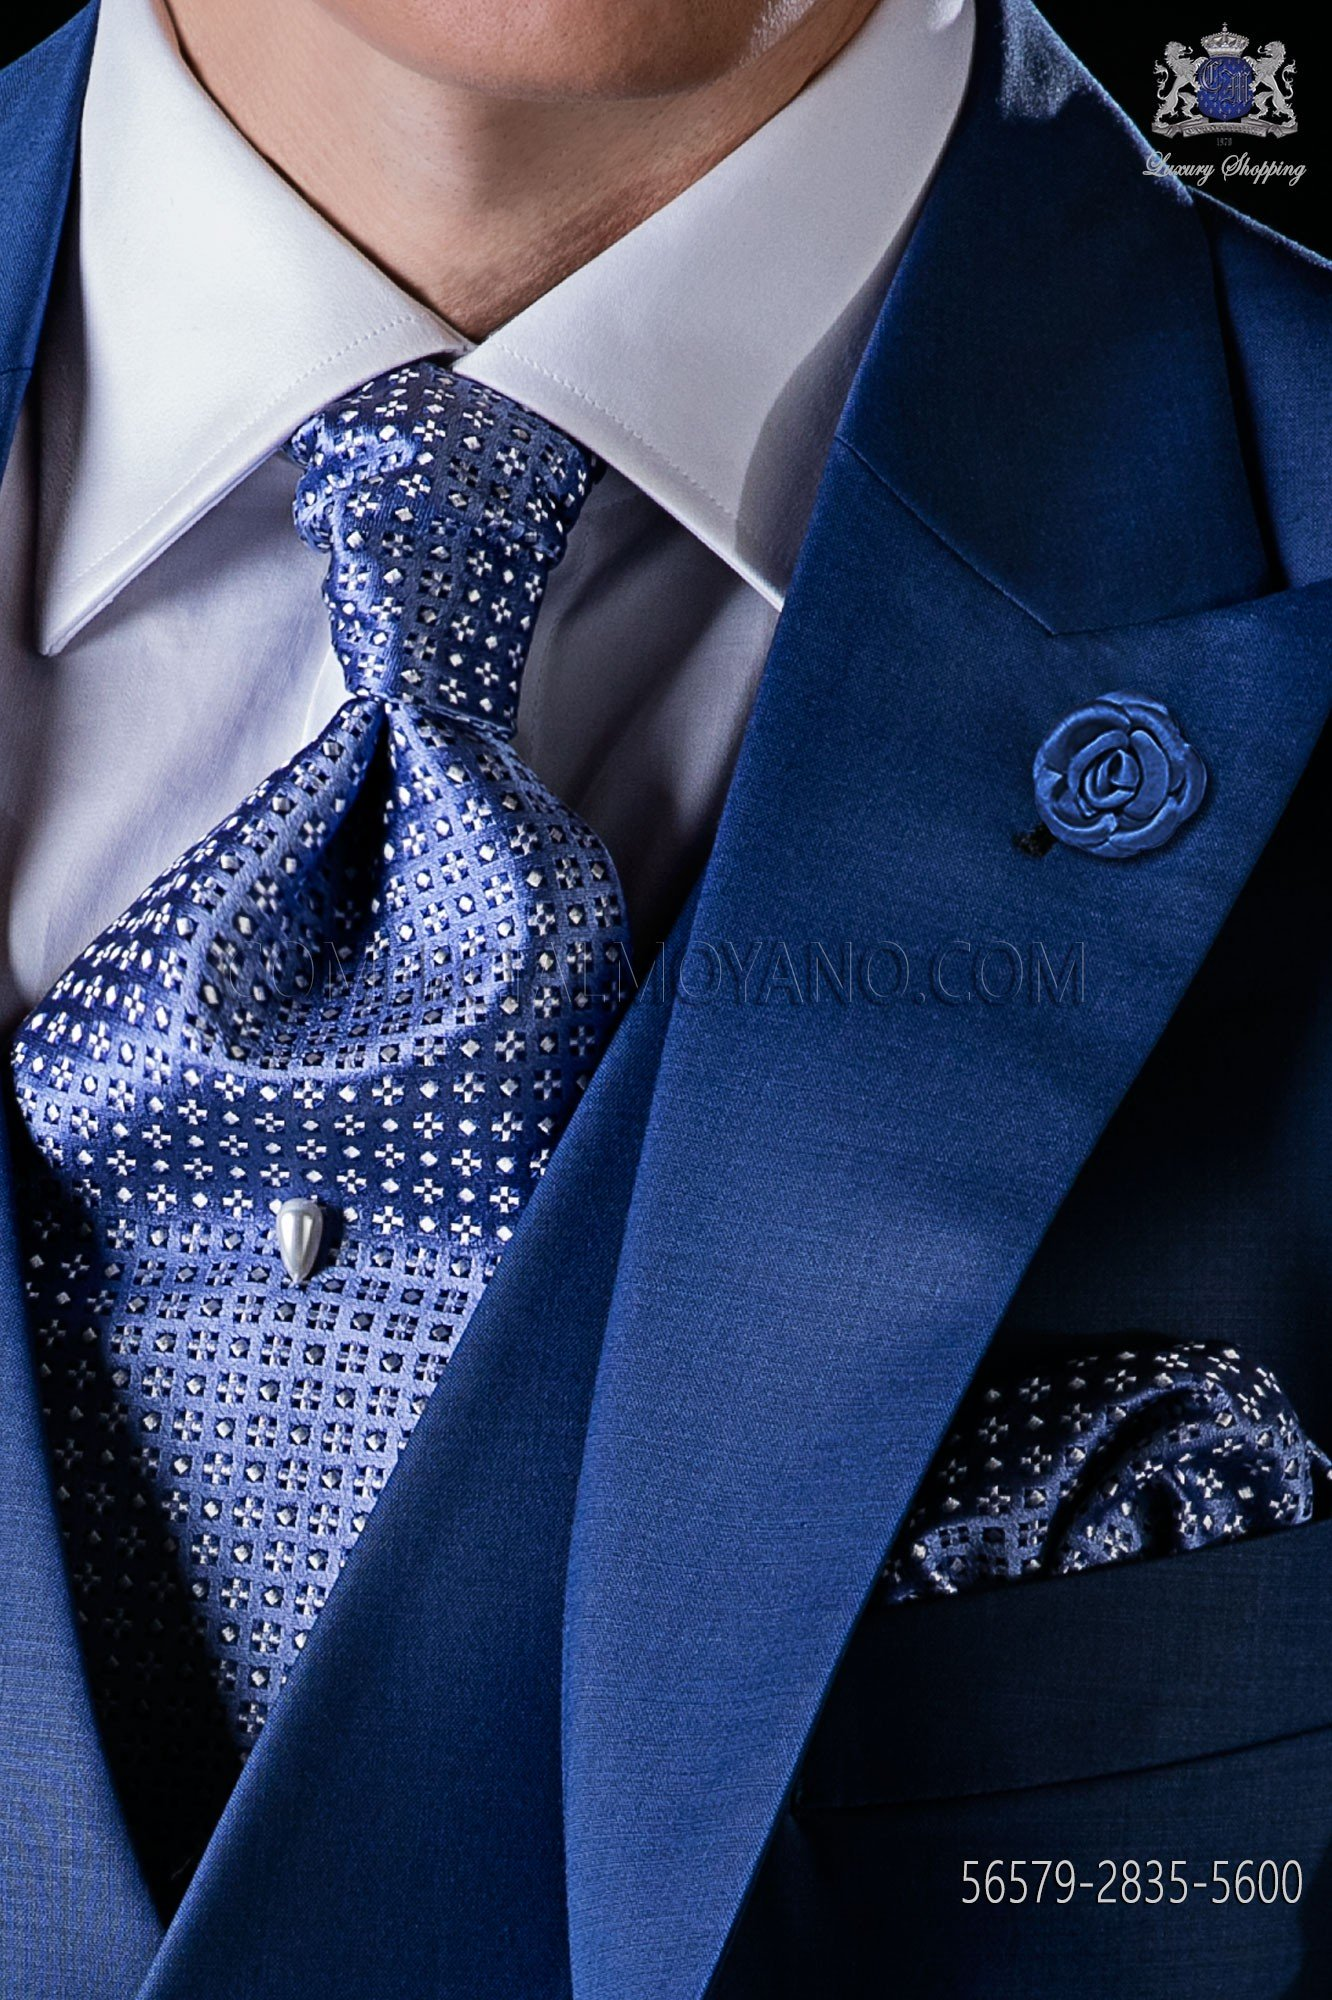 4969369cd77d Light blue silk tie and matching pocket square. Loading zoom